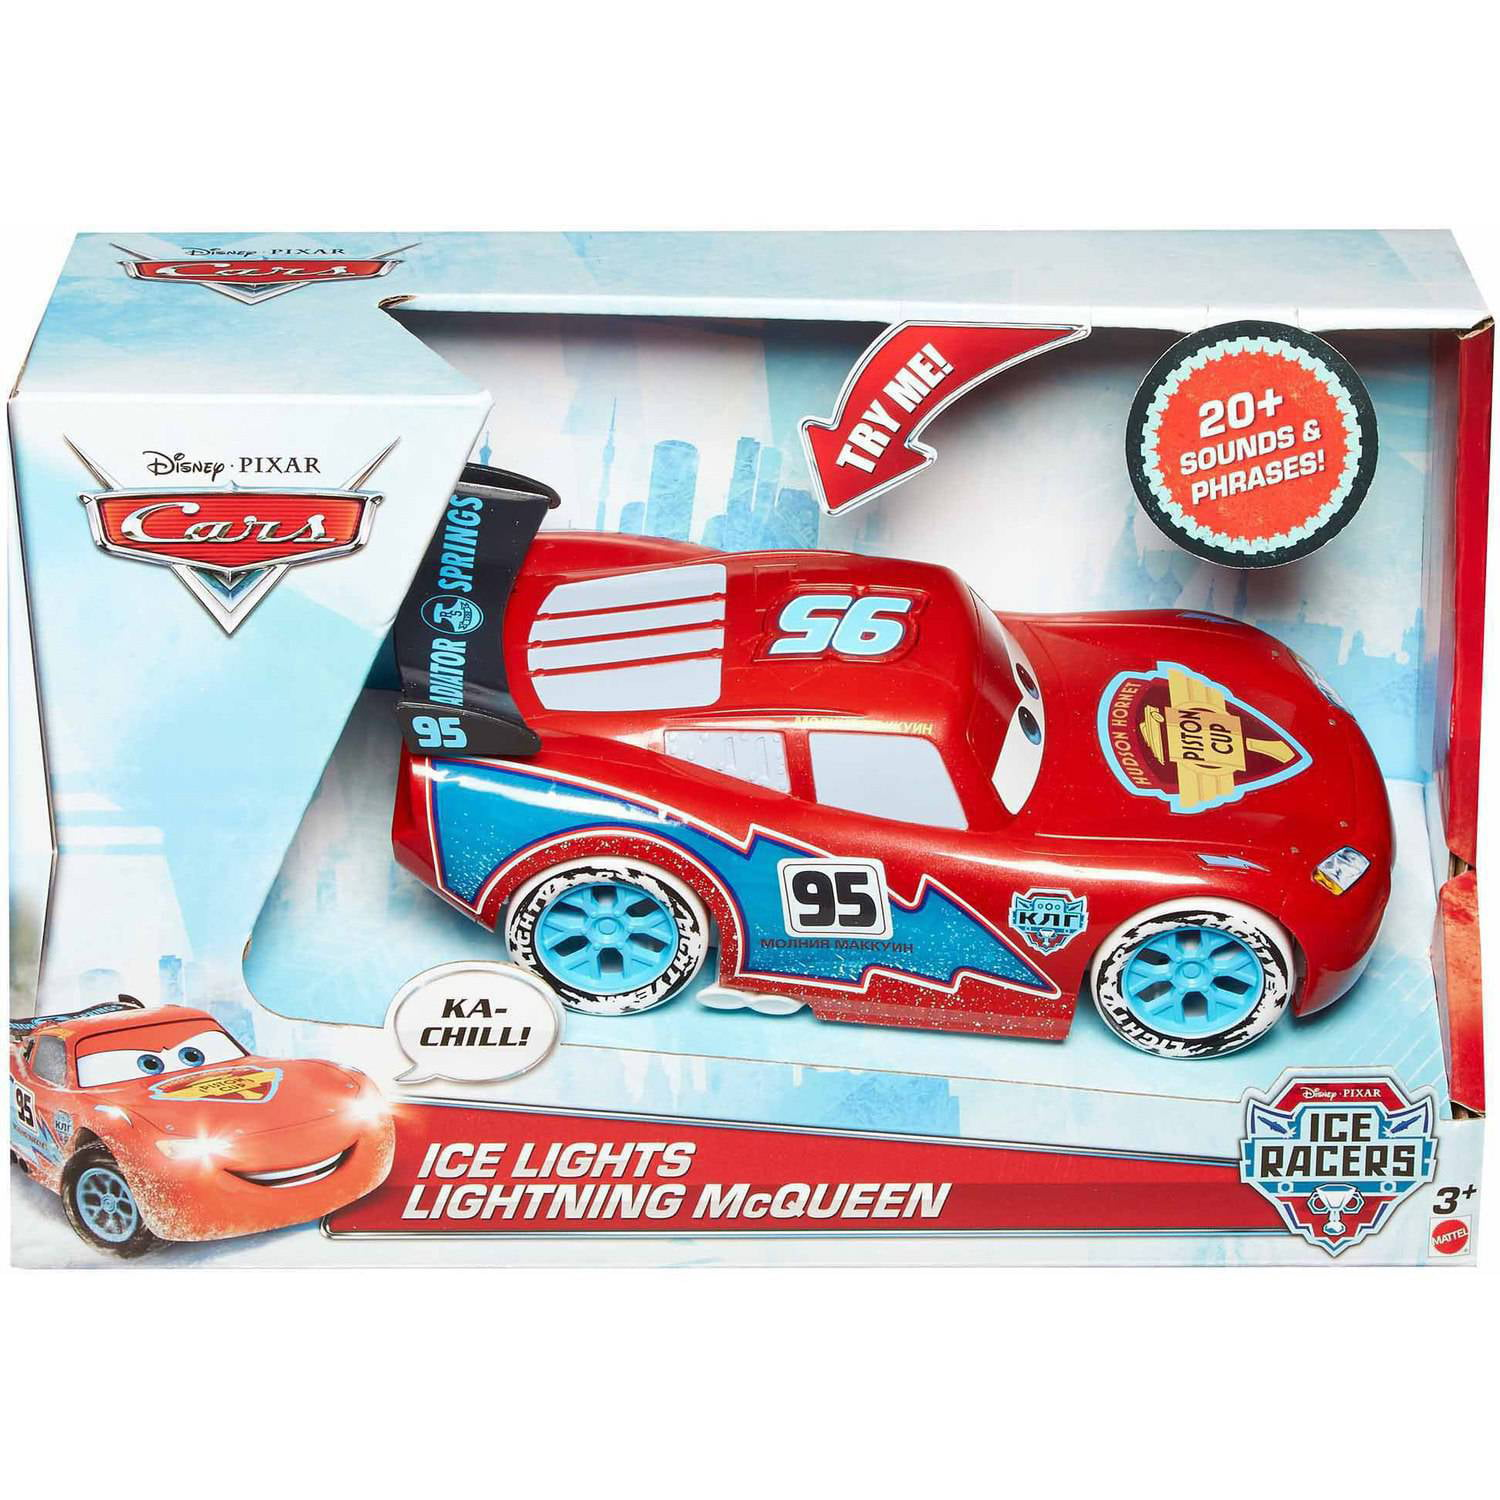 lit de flash mcqueen disney cars with lit de flash mcqueen disney lightning mcqueen bedding. Black Bedroom Furniture Sets. Home Design Ideas